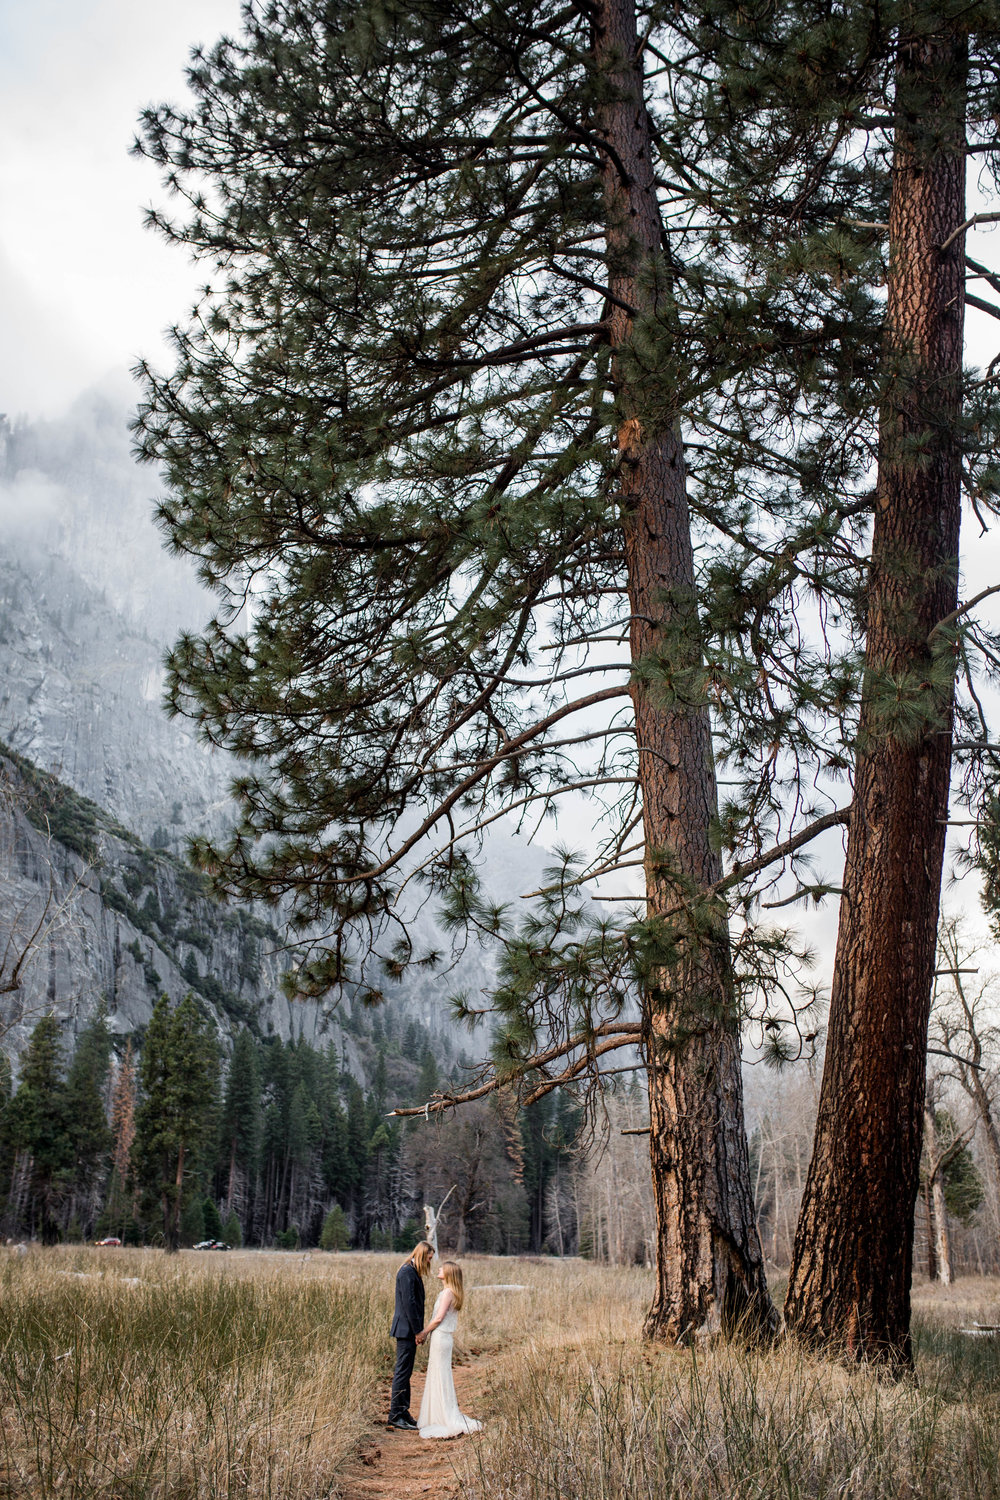 Nicole-Daacke-Photography-Adventurous-Elopement-Intimiate-Wedding-Destination-Wedding-Yosemite-National-Park-Laid-Back-Love-Photographer-12.jpg